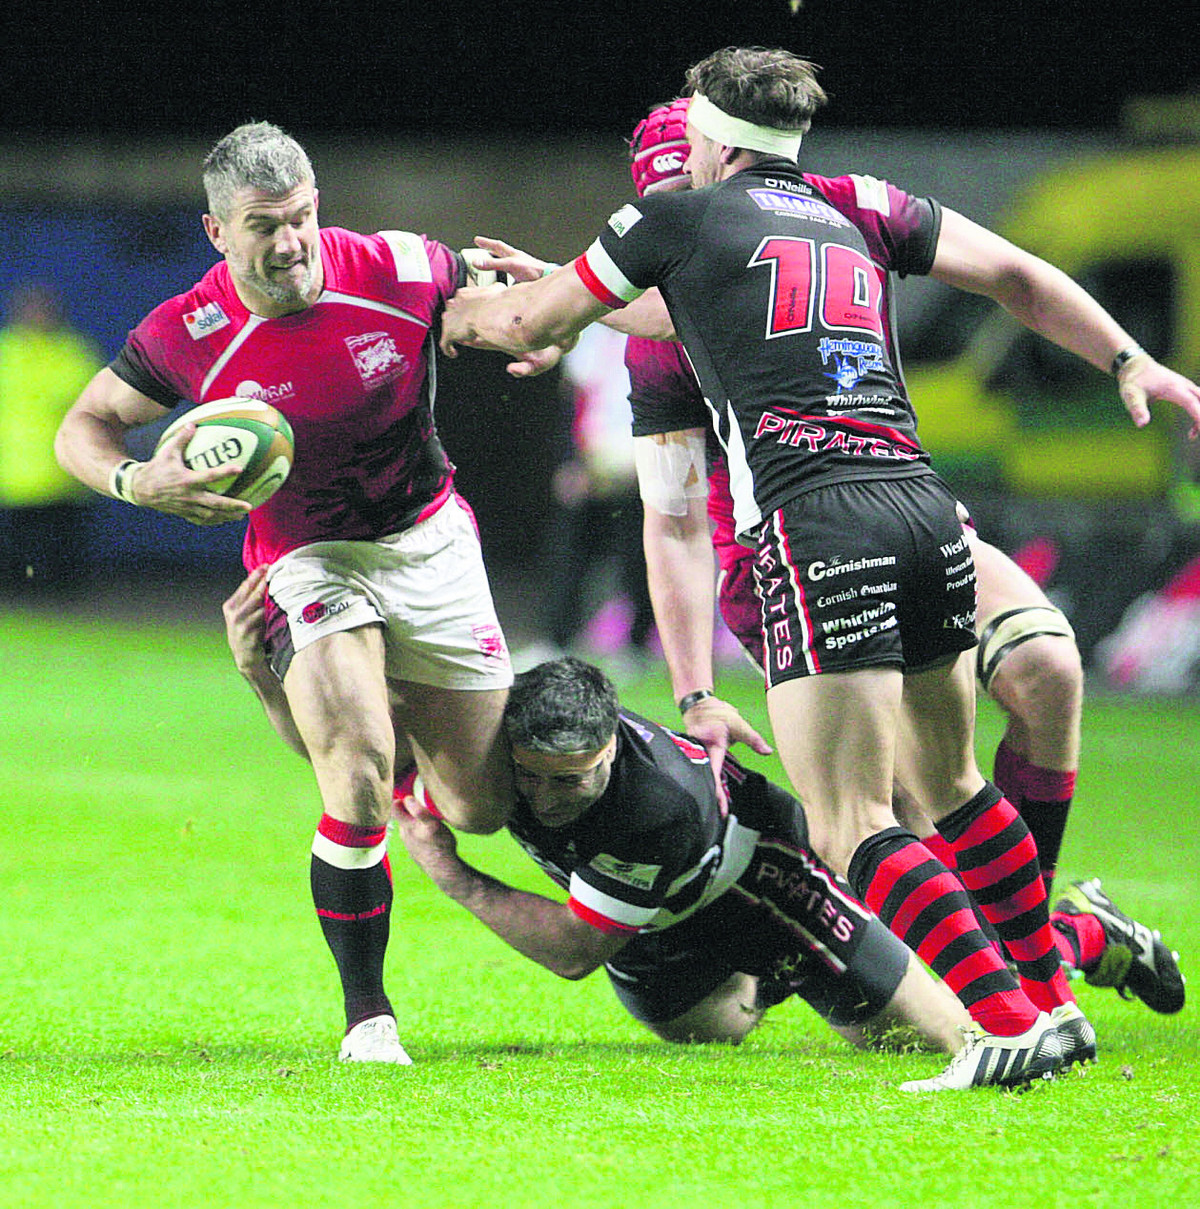 Tom May has recovered from injury has leads London Welsh against leaders Rotherham